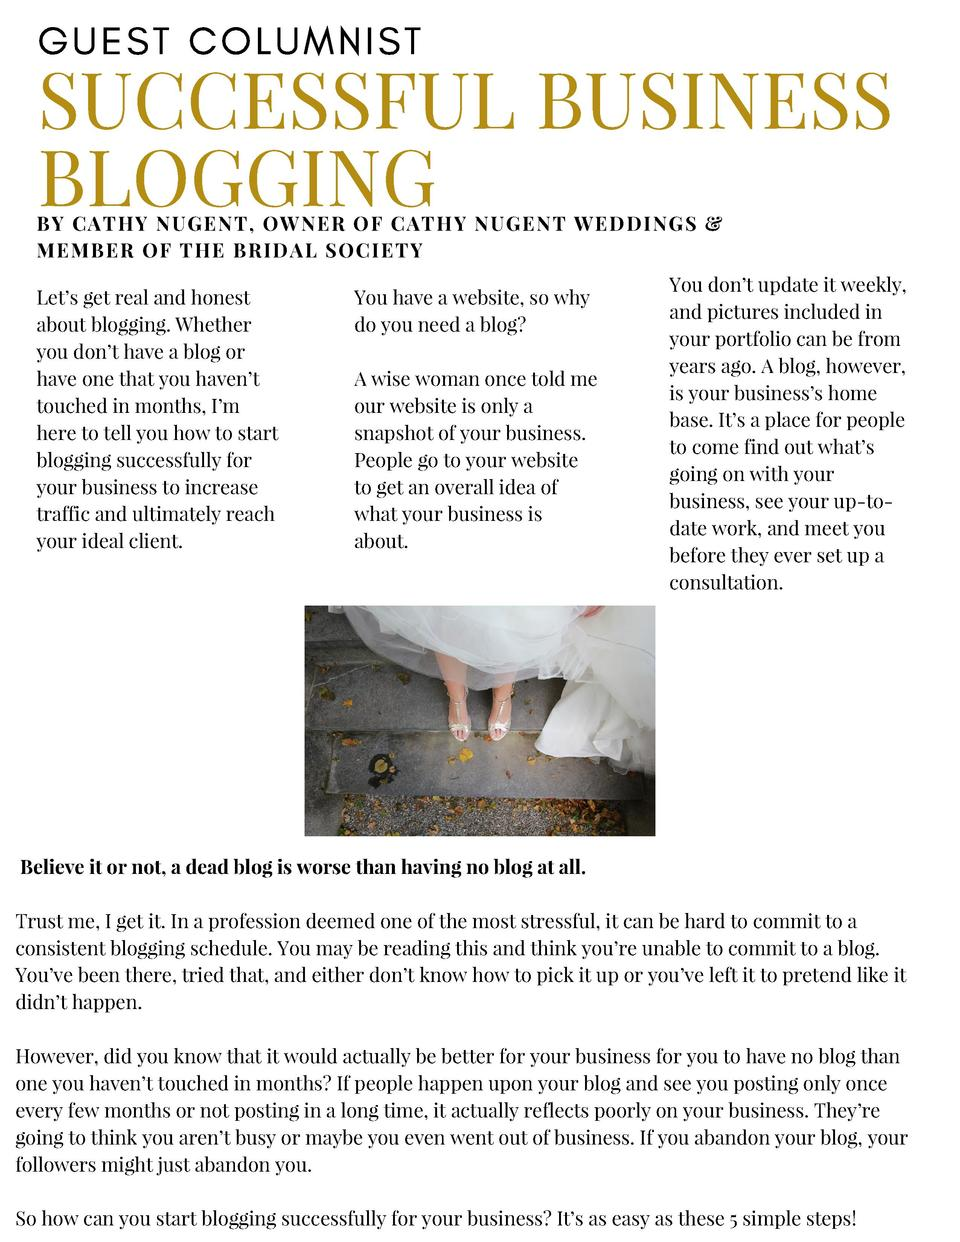 GUEST COLUMNIST  SUCCESSFUL BUSINESS BLOGGING  BY CATHY NUGENT, OWNER OF CATHY NUGENT WEDDINGS   MEMBER OF THE BRIDAL SOCI...